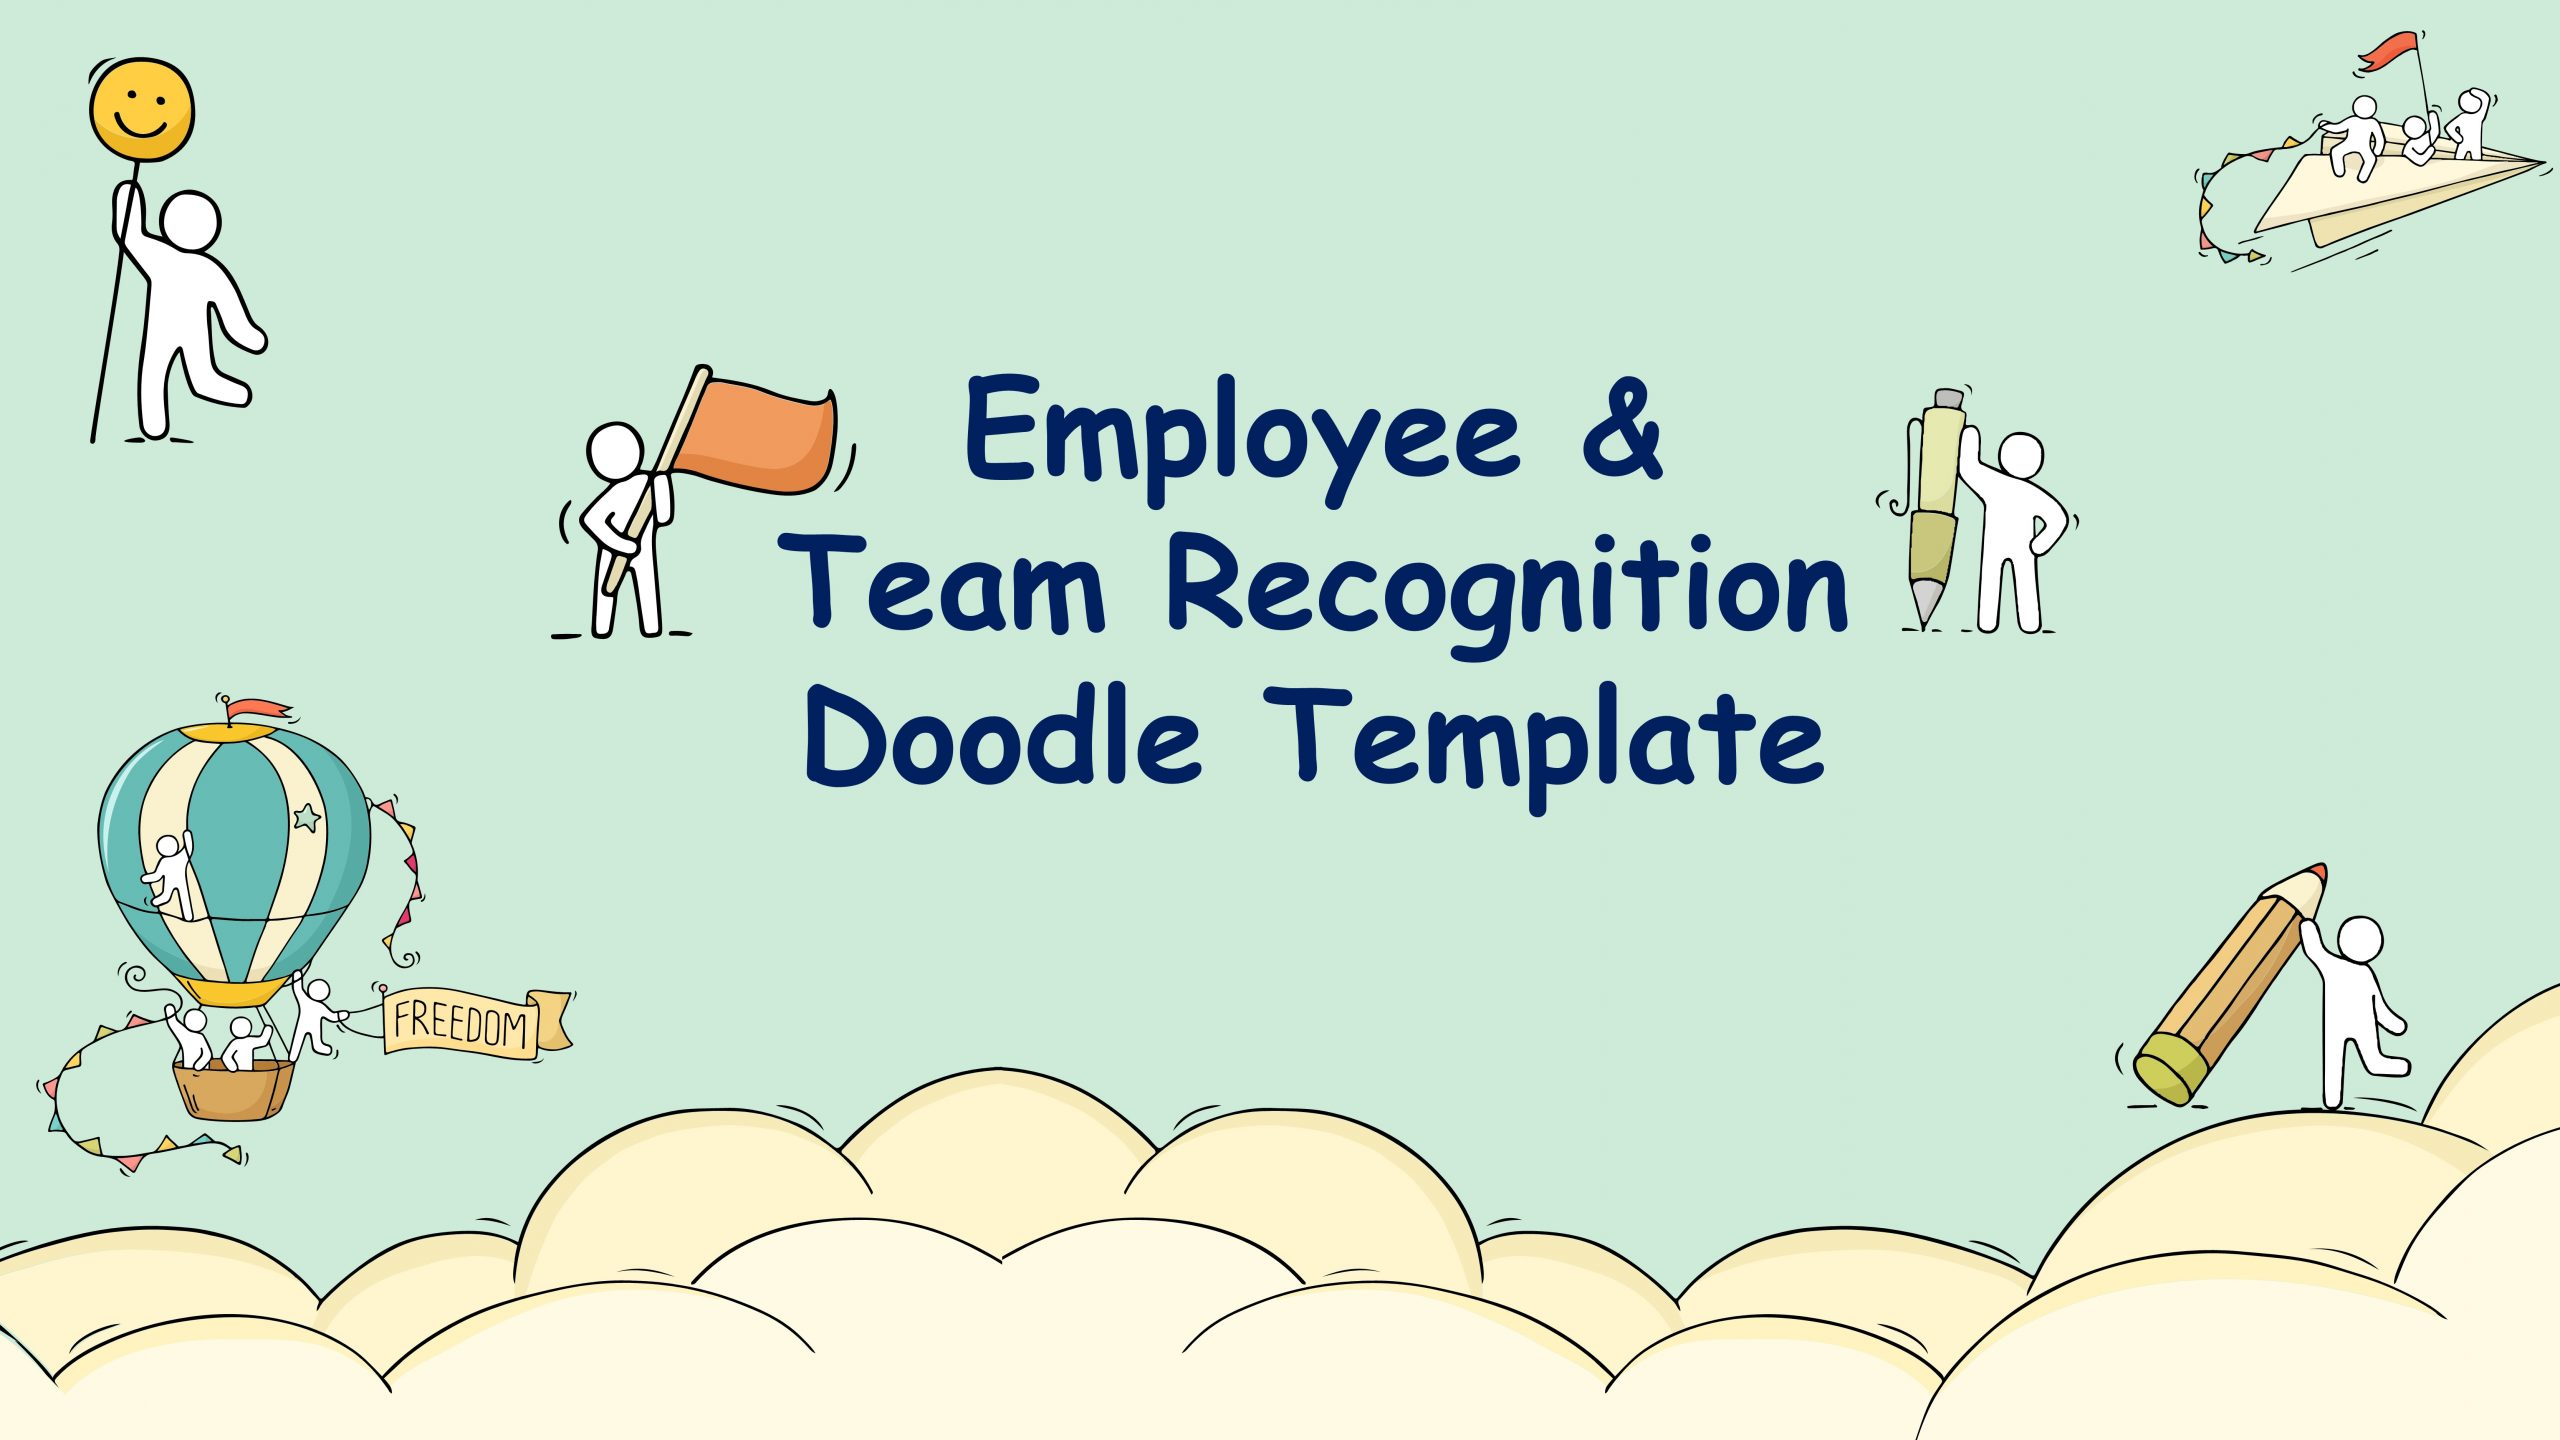 Free presentation template of Employee & Team Recognition Doodle